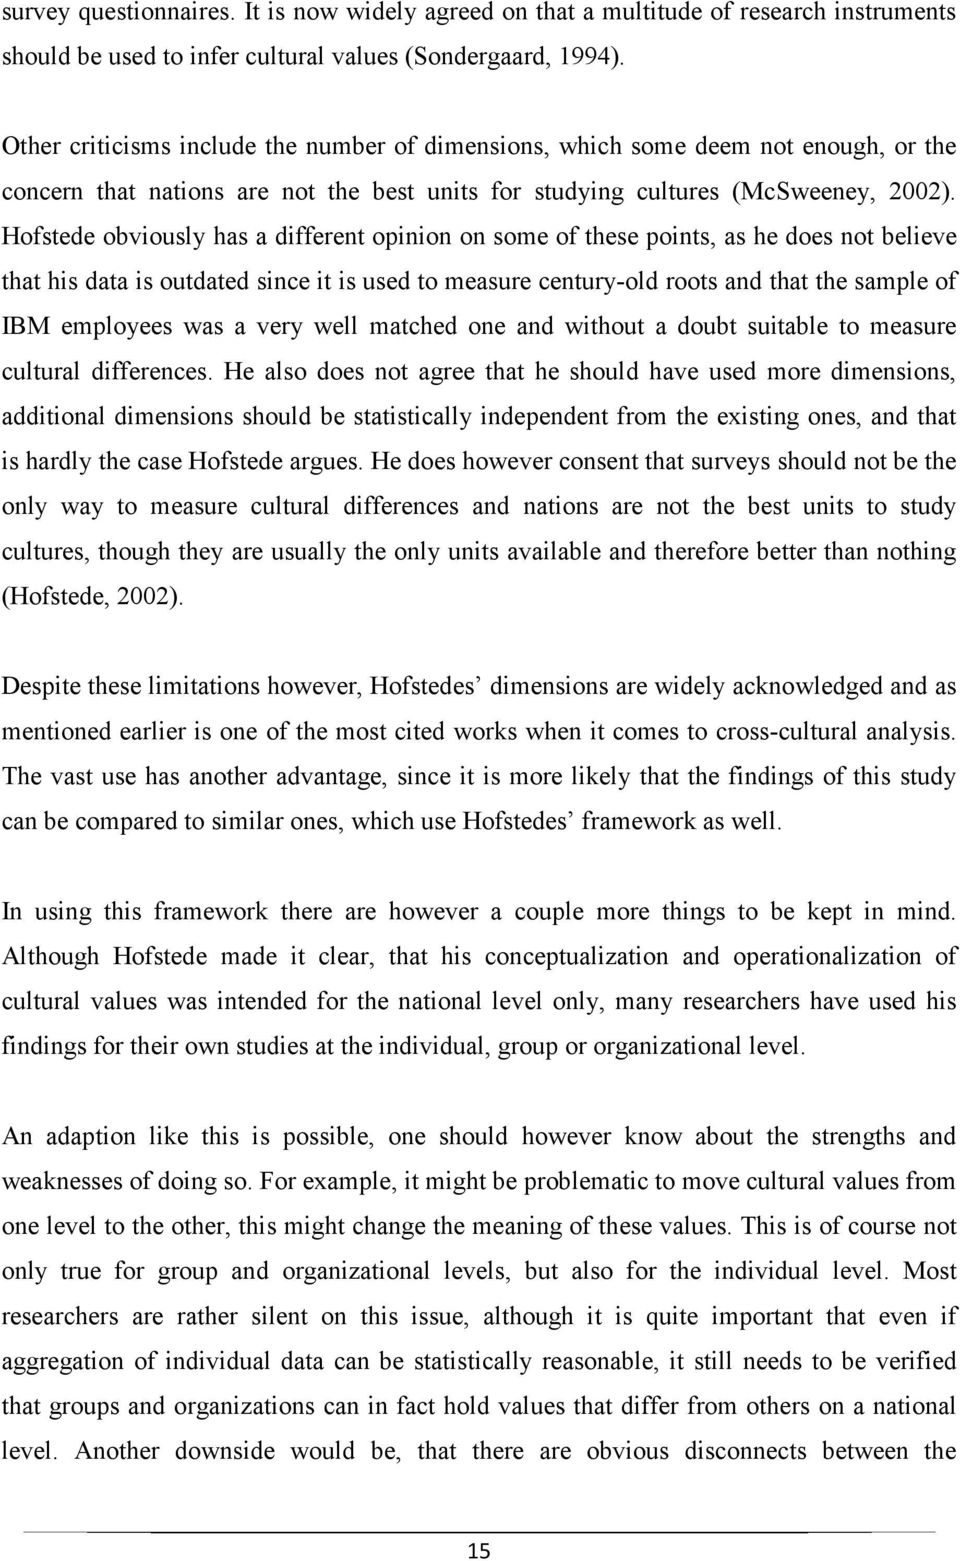 Hofstede obviously has a different opinion on some of these points, as he does not believe that his data is outdated since it is used to measure century-old roots and that the sample of IBM employees